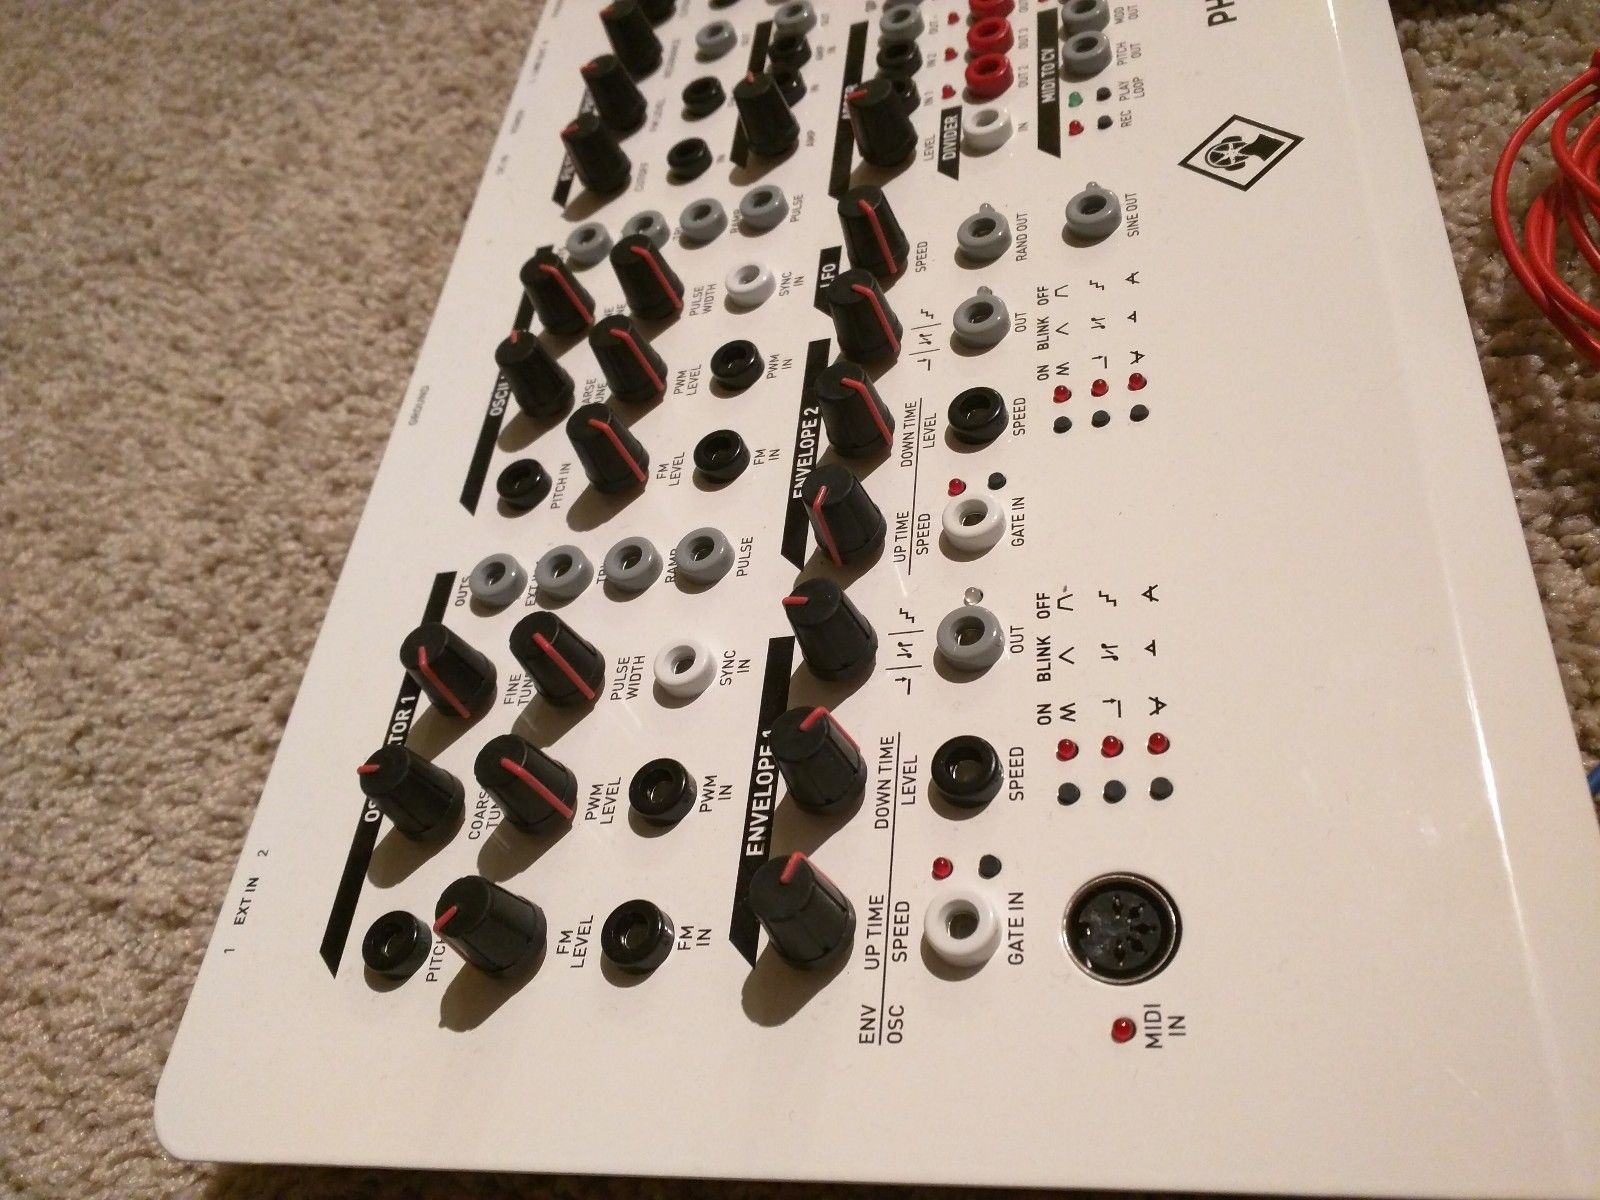 KILPATRICK AUDIO K65 PHENOL MODULAR SYNTHESIZER DRIVER FOR PC